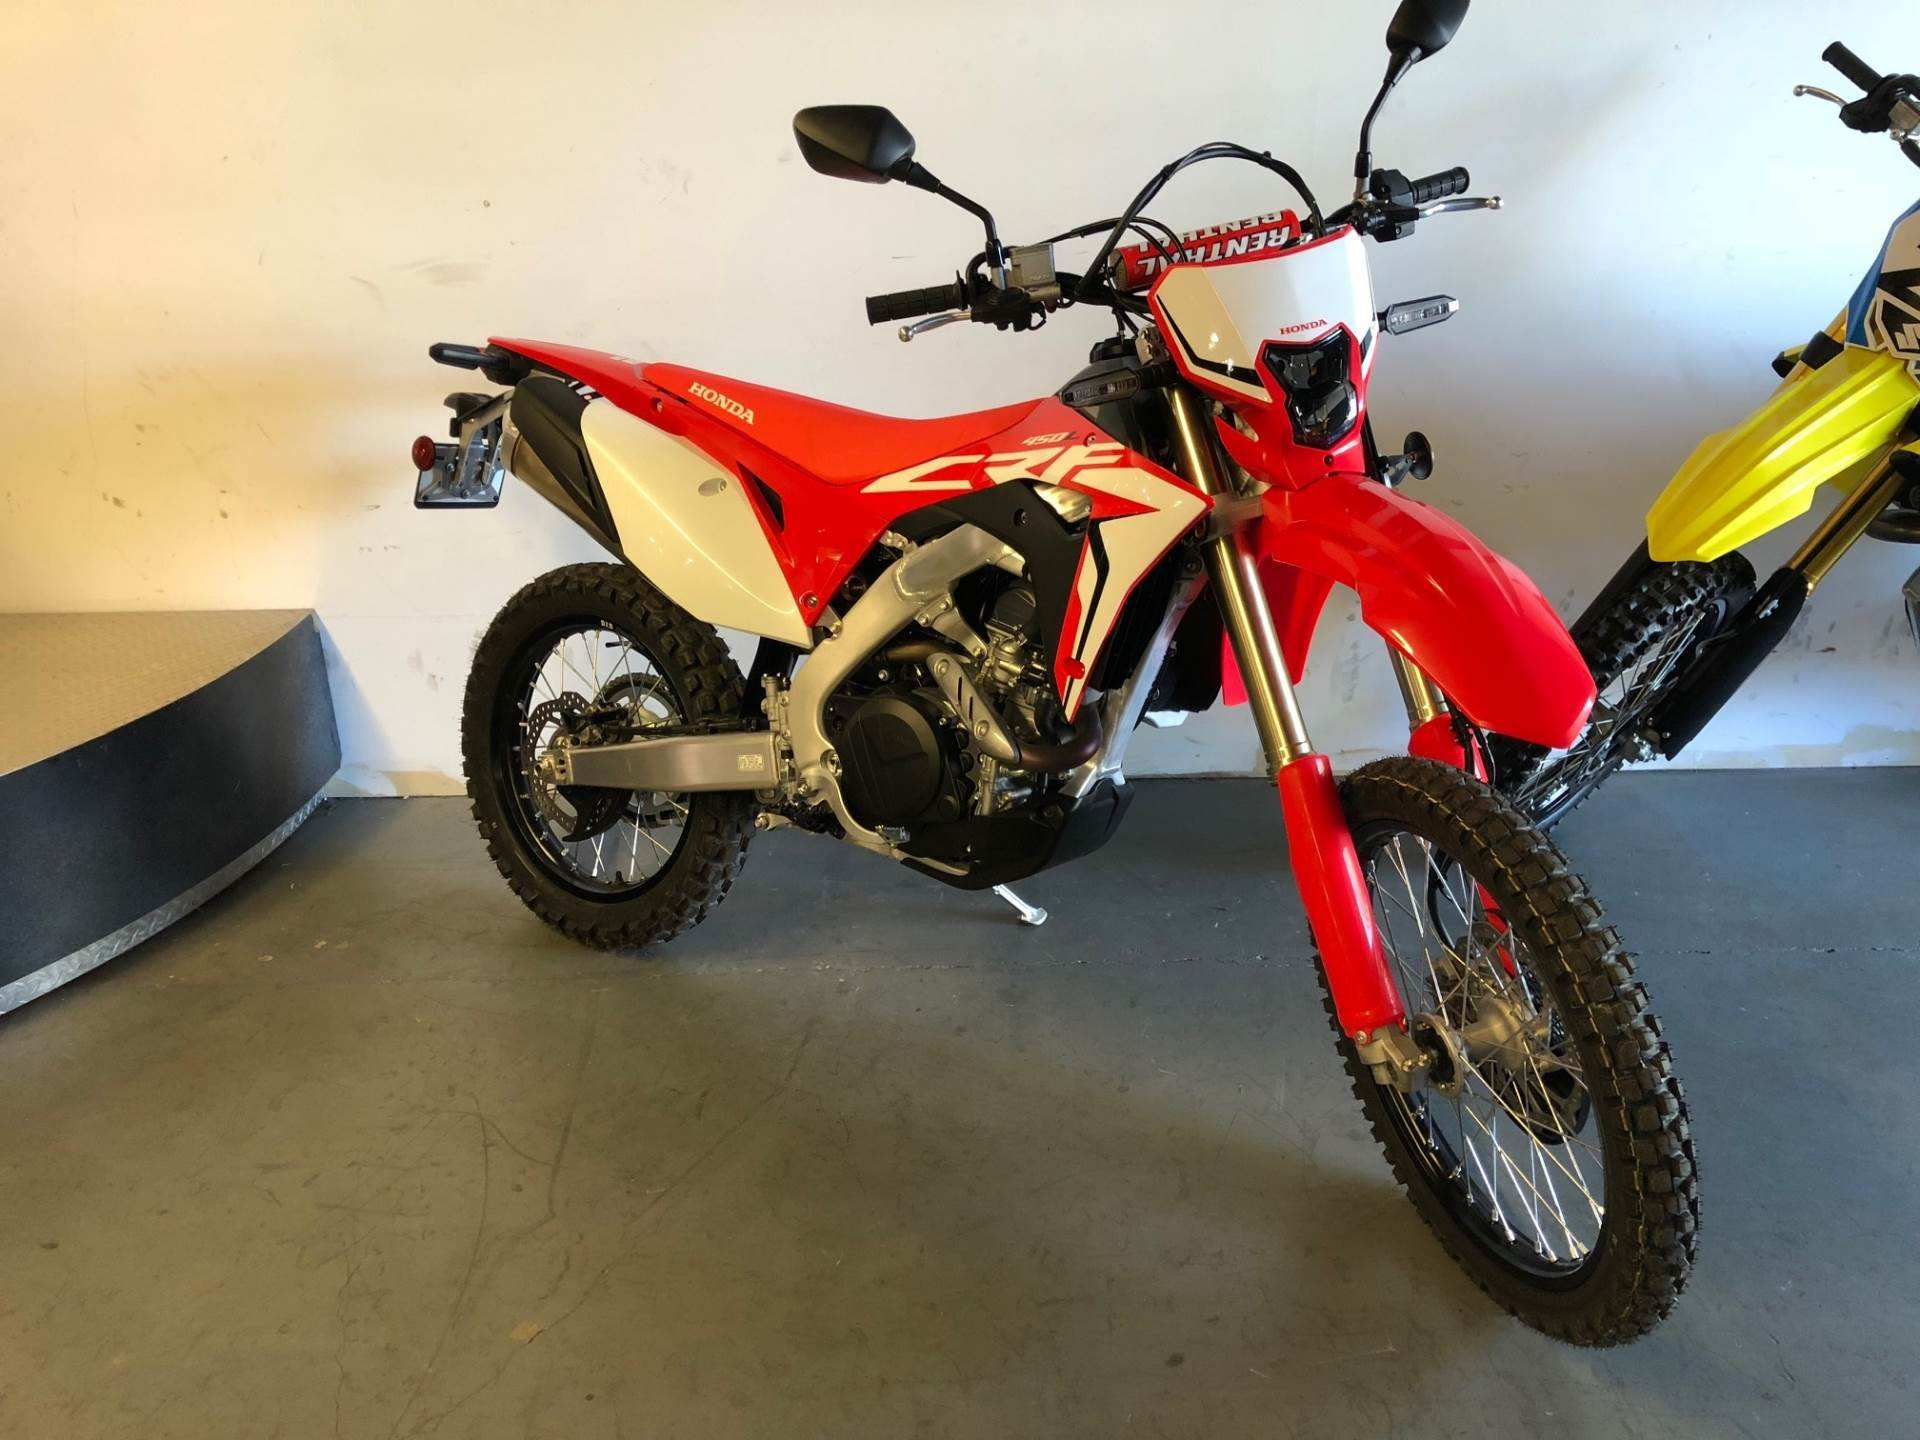 93 Concept of 2019 Honda Crf450L Exterior for 2019 Honda Crf450L